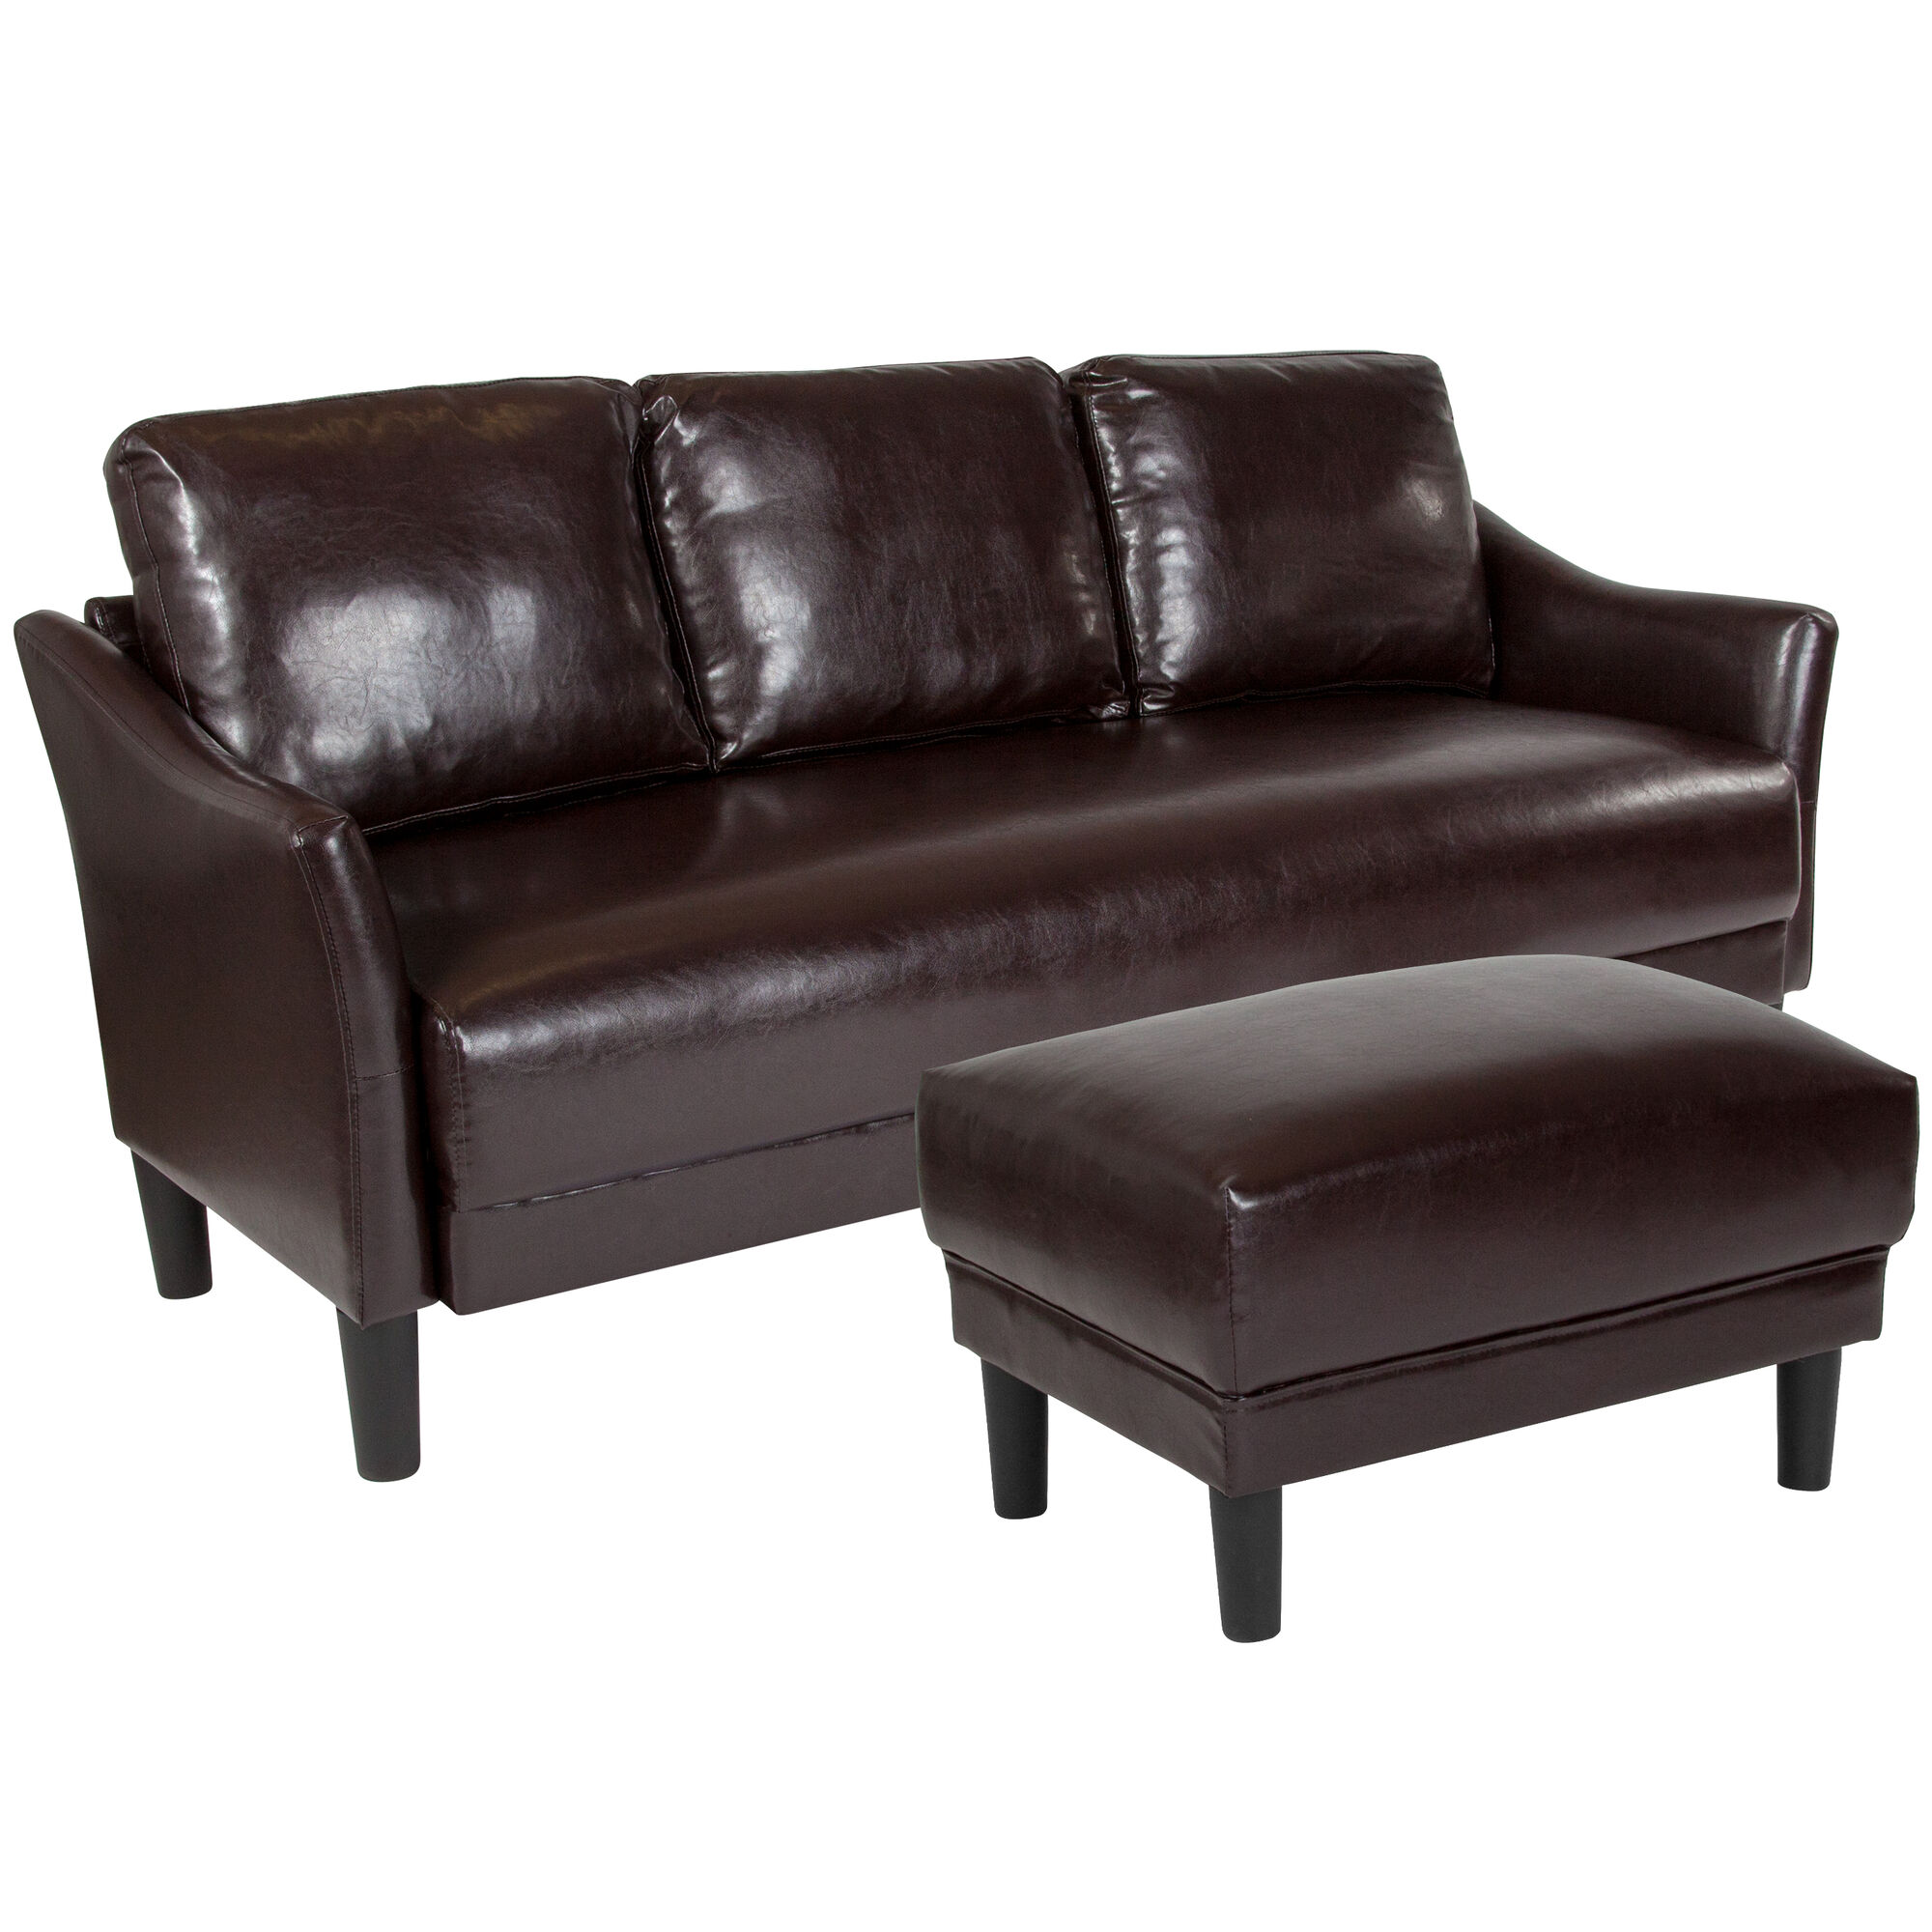 Sensational Asti Upholstered Sofa And Ottoman In Brown Leather Gmtry Best Dining Table And Chair Ideas Images Gmtryco